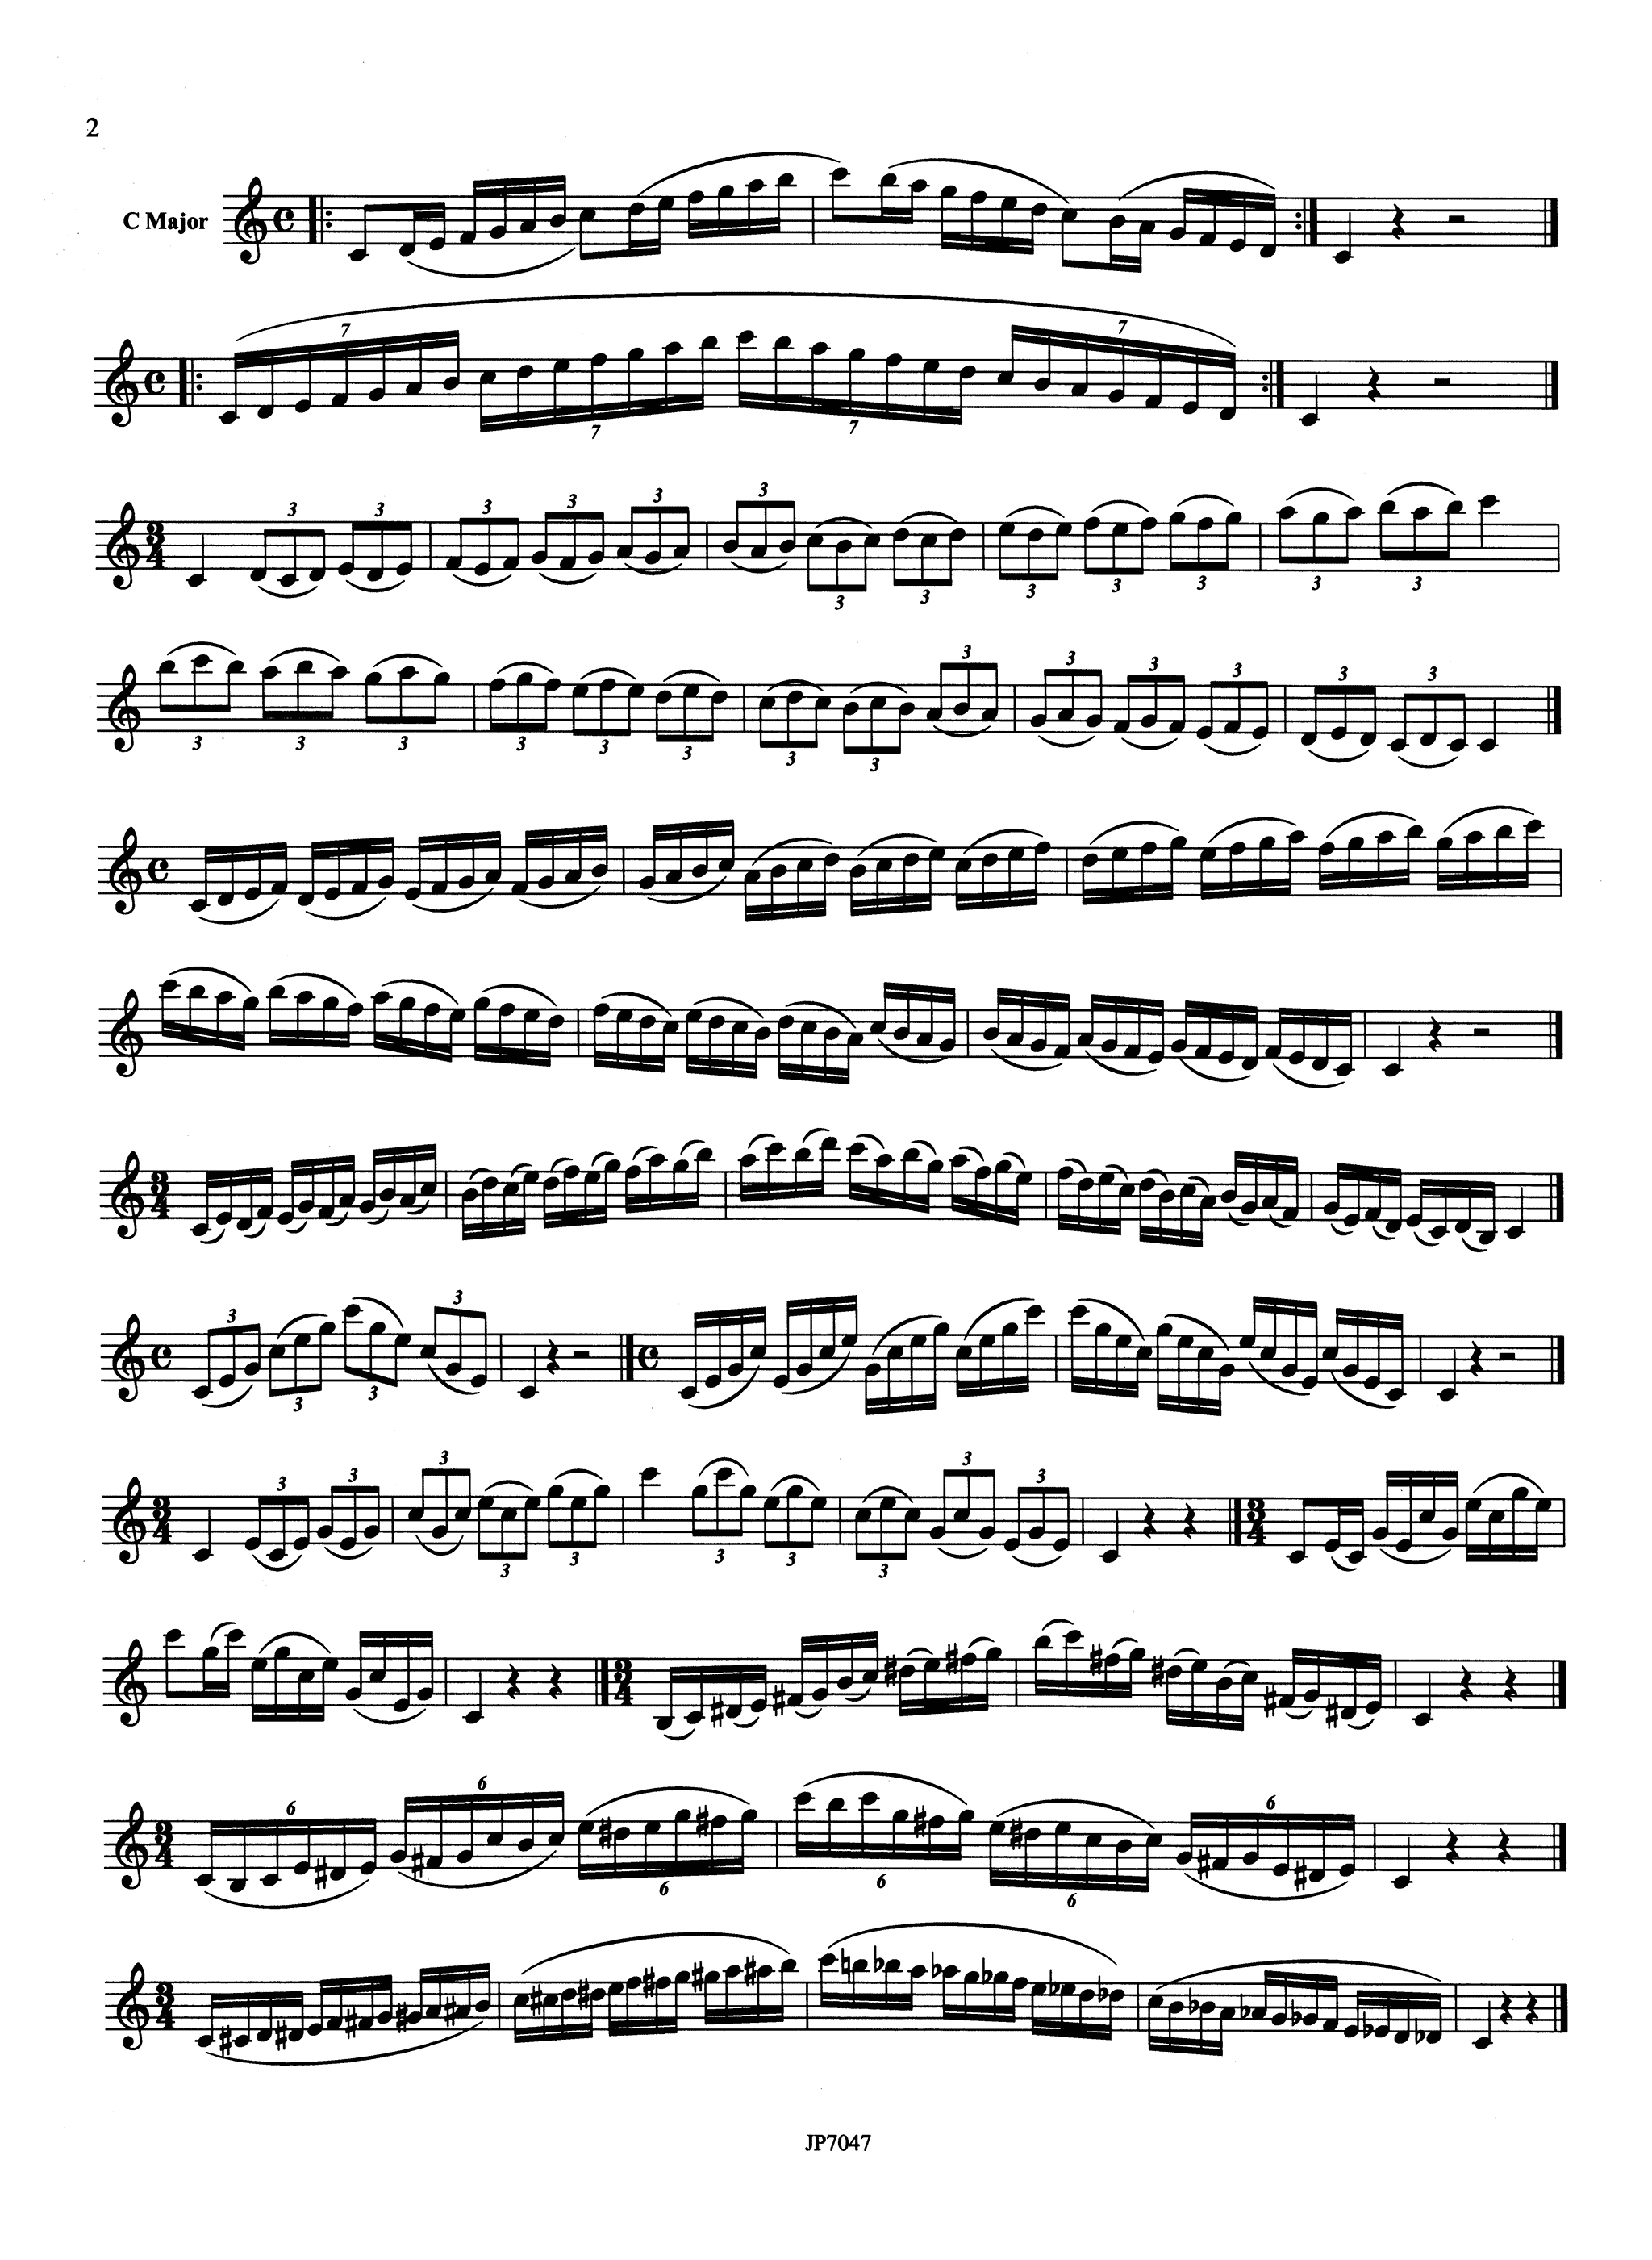 Albert 24 Varied Scales & Exercises for the Clarinet Page 2